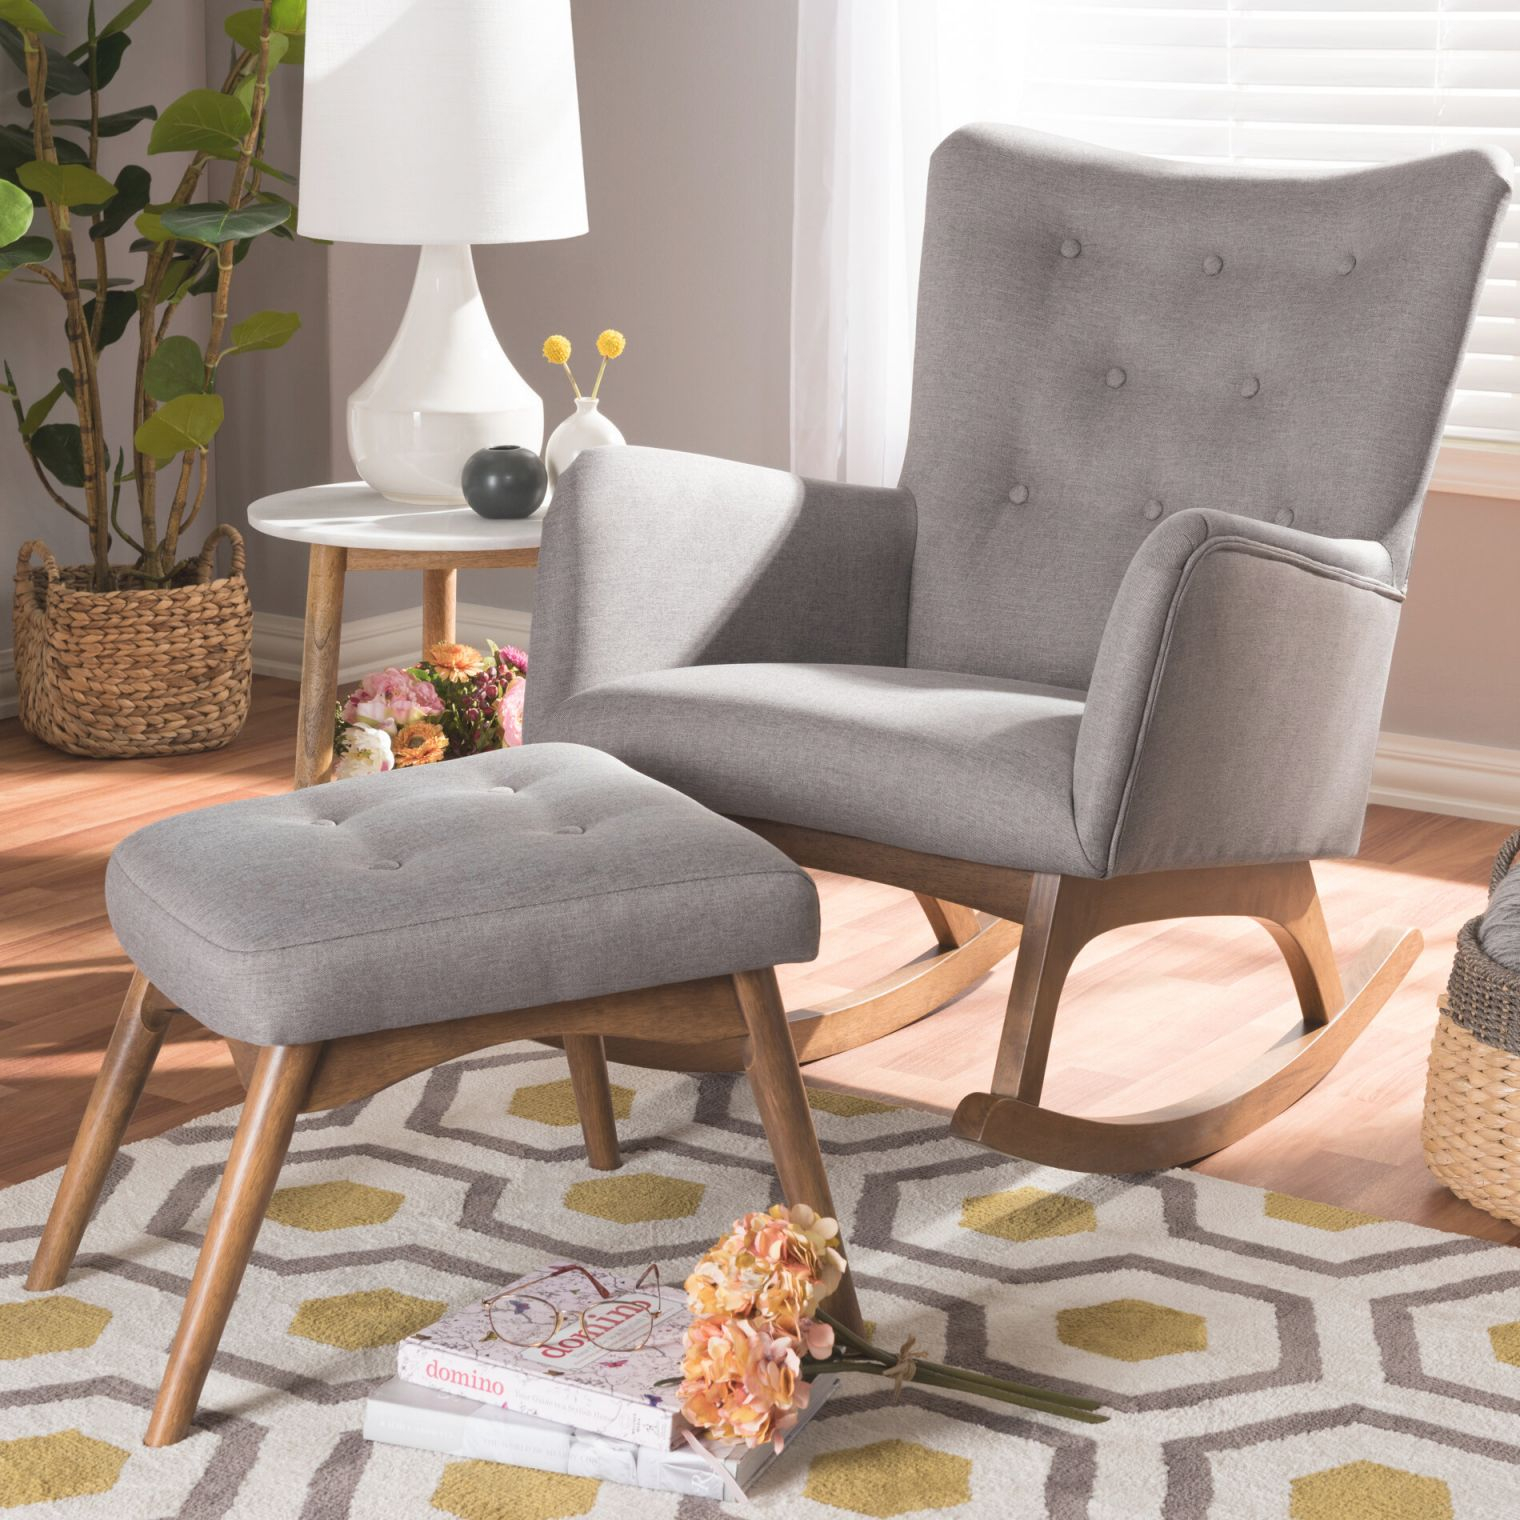 Centreville Rocking Chair With Ottoman with regard to Chairs For Living Room Cheap